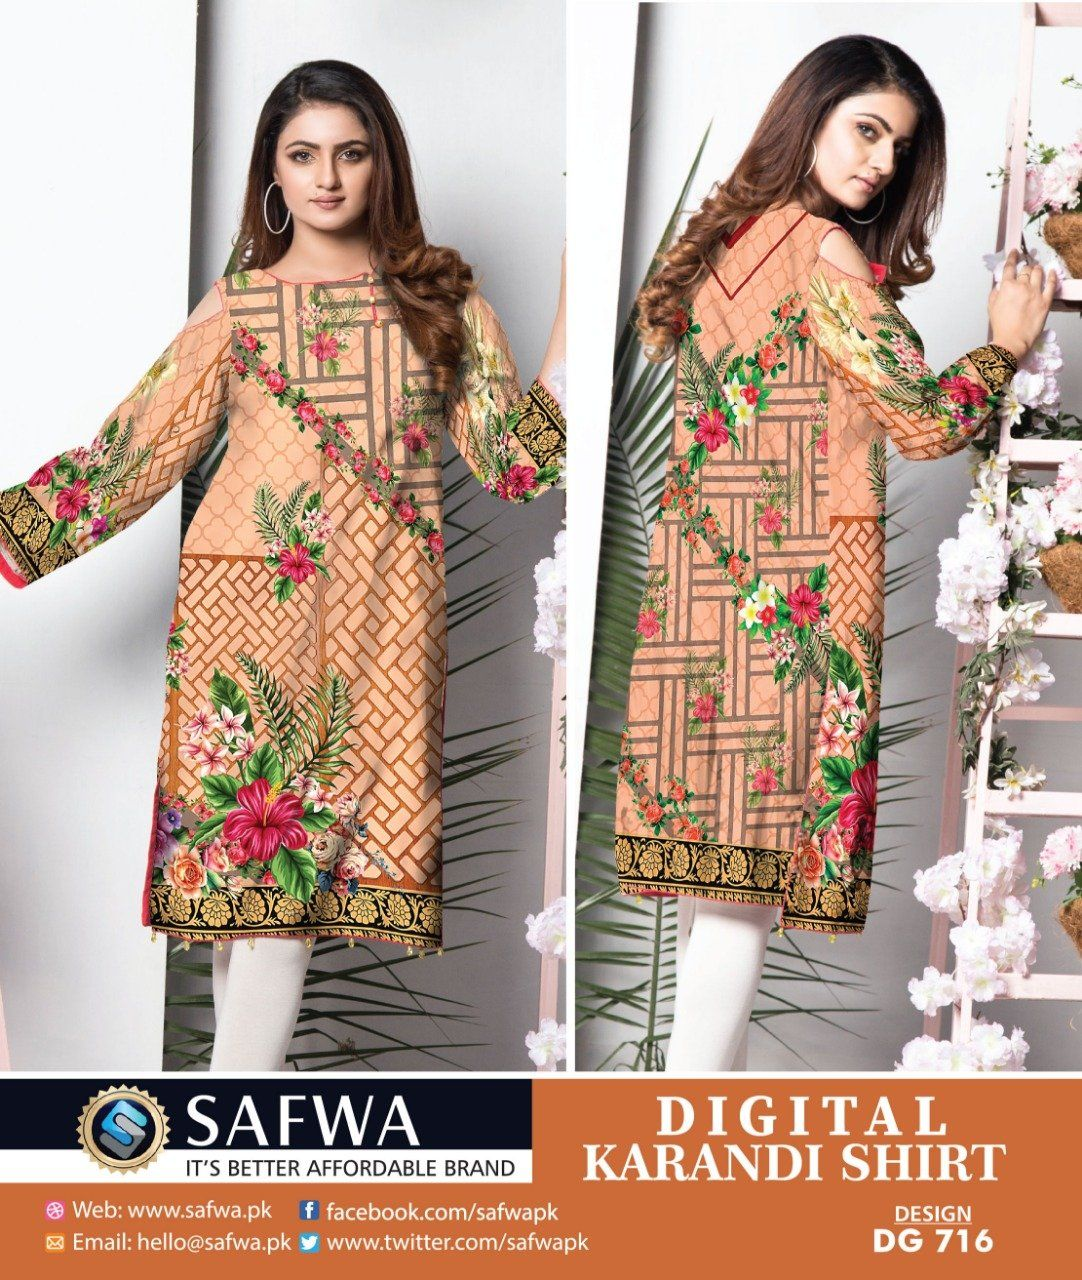 8fd59972b7 Safwa Brand - Free Delivery! - Cash on Delivery - 30 Days Returns - DG716